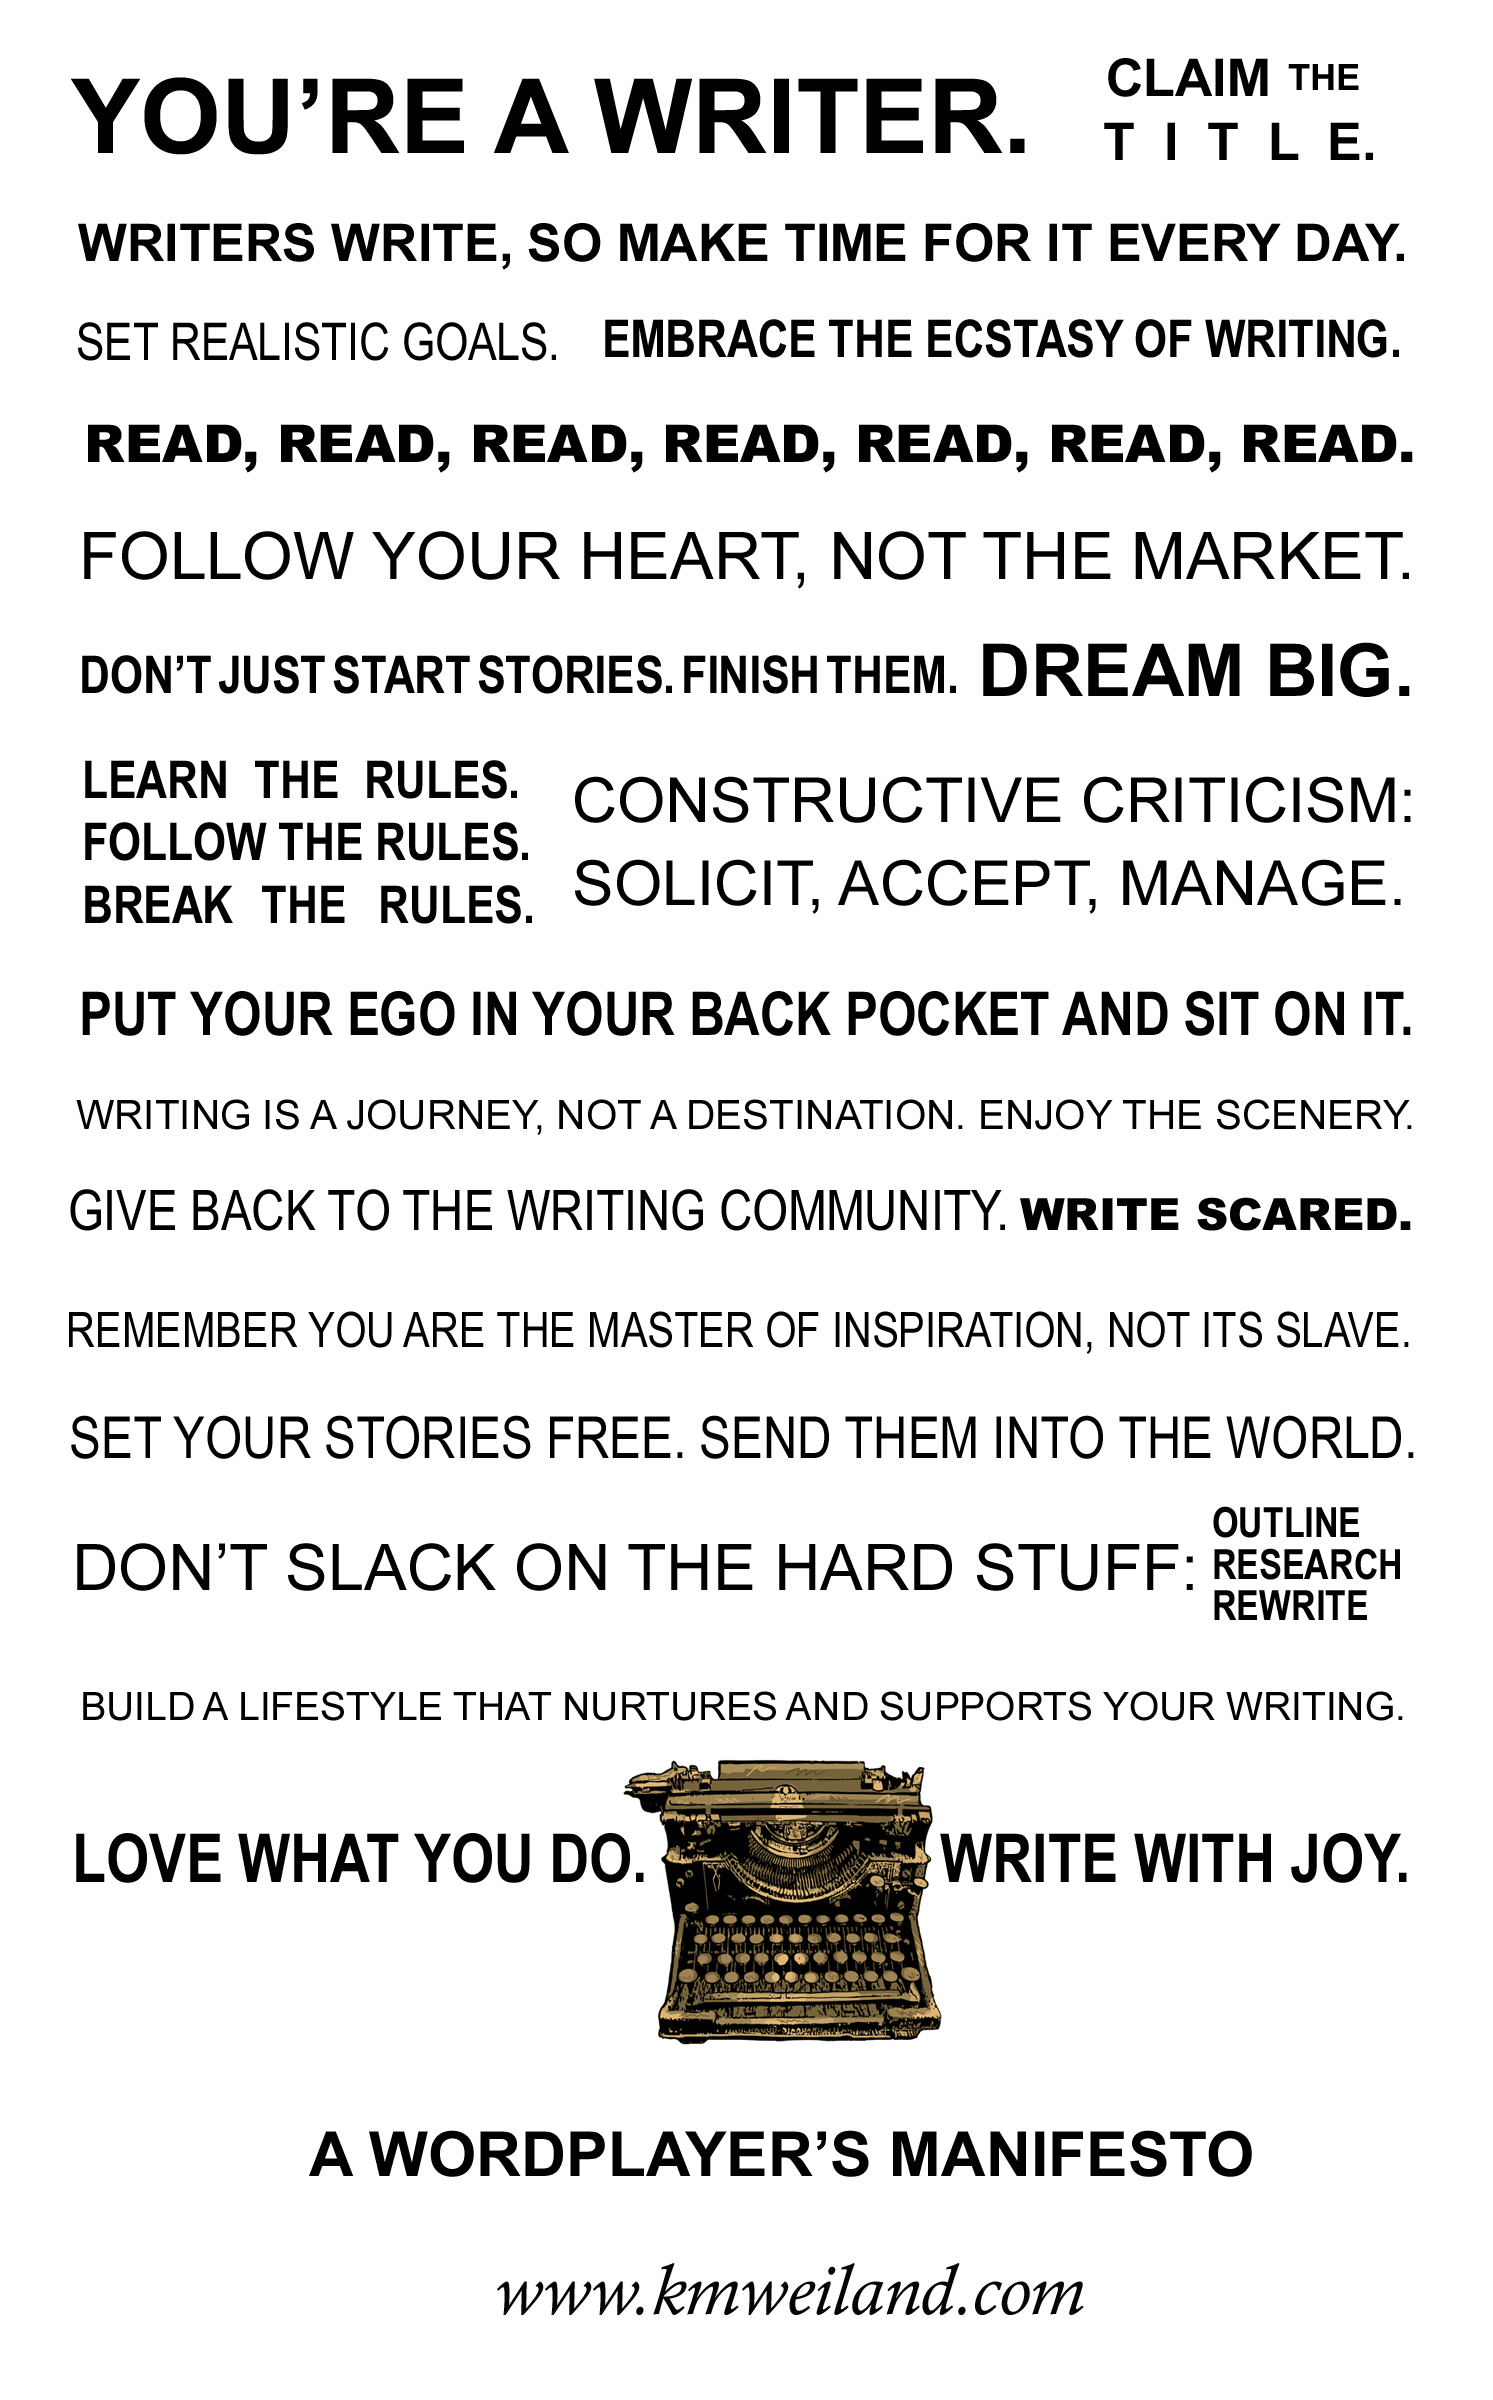 http://platformthing.files.wordpress.com/2012/08/a-wordplayers-manifesto-by-k-m-weiland.jpg